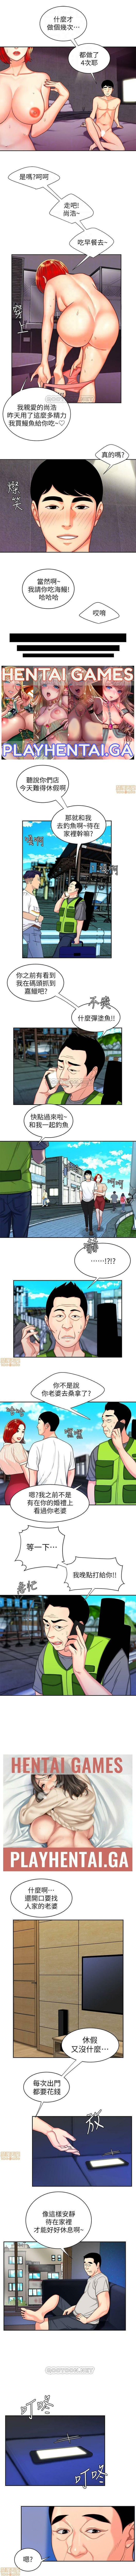 DELIVERY MAN | 幸福外卖员 Ch. 9 5